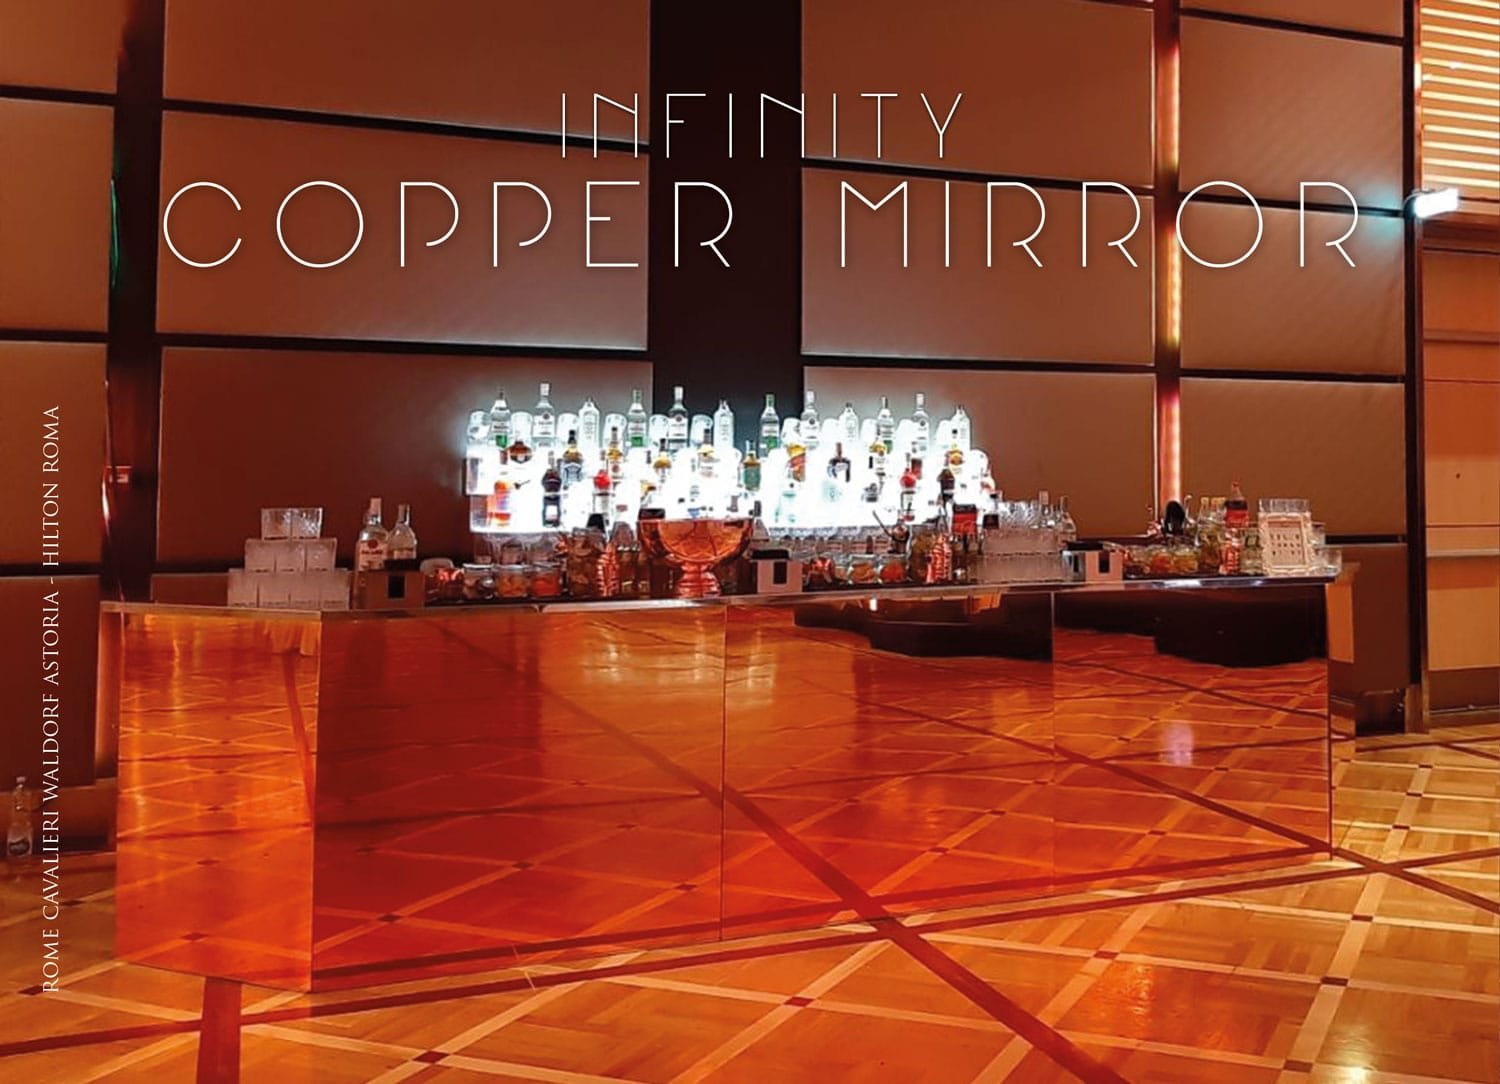 infinity copper mirror bancone